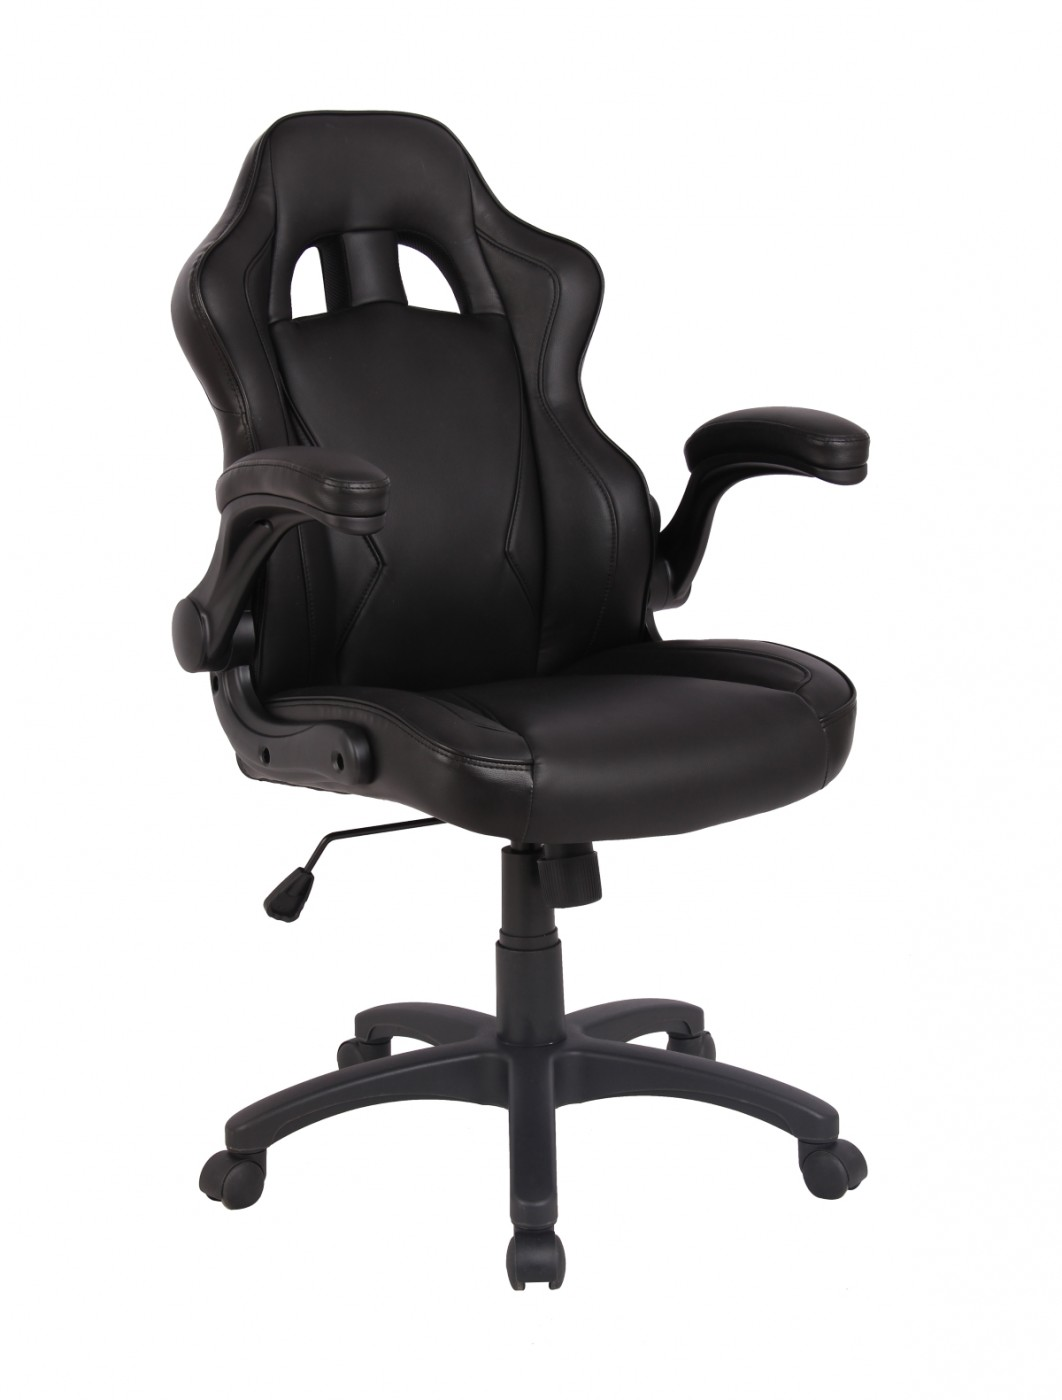 Gaming Chairs - E Tinsley Predator Office Chairs BCP/H600/BK